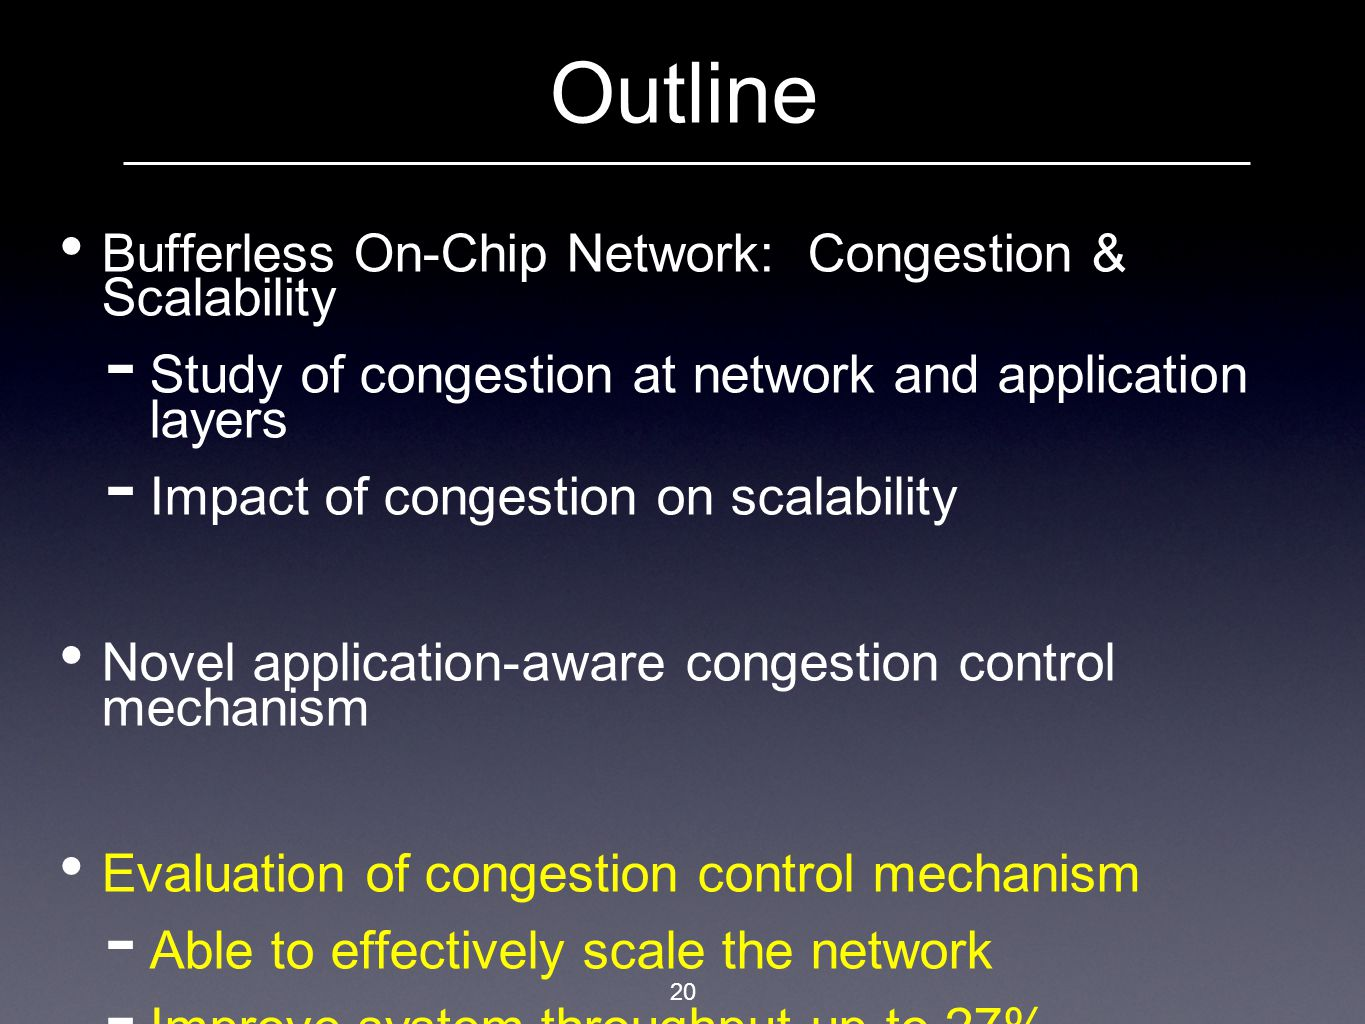 20 Outline Bufferless On-Chip Network: Congestion & Scalability  Study of congestion at network and application layers  Impact of congestion on scalability Novel application-aware congestion control mechanism Evaluation of congestion control mechanism  Able to effectively scale the network  Improve system throughput up to 27%